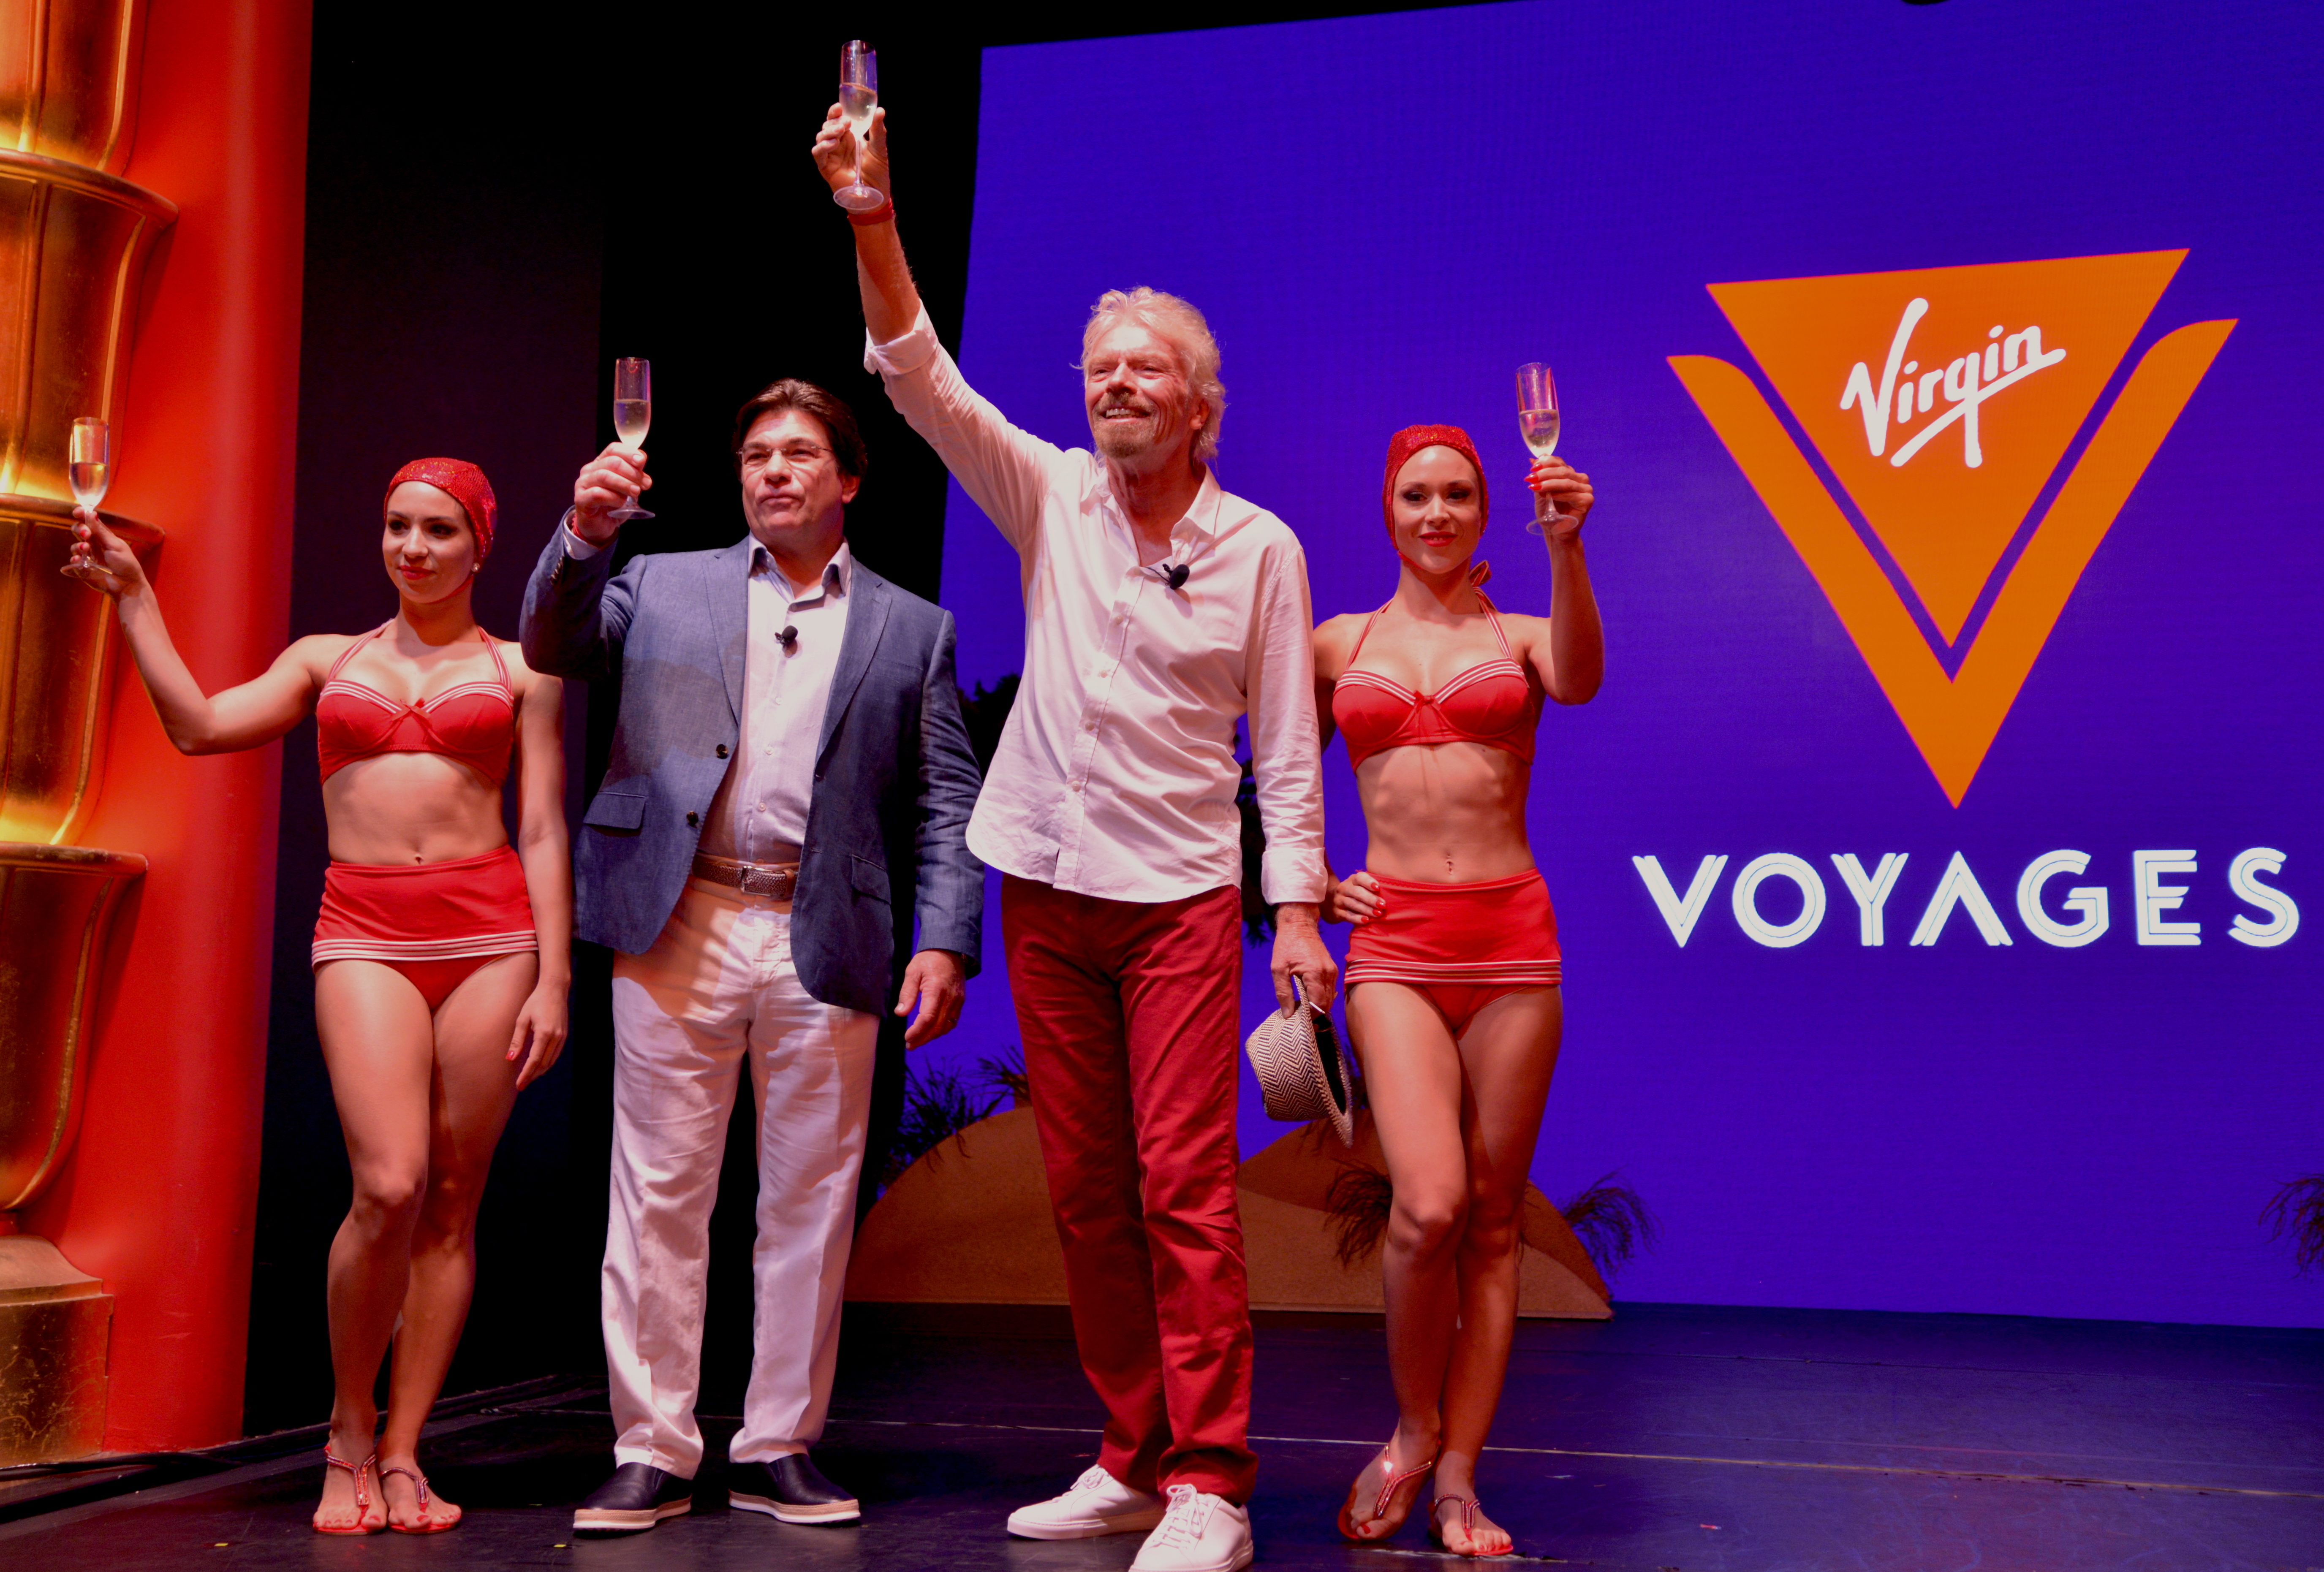 New name for Branson's cruise ship line: Virgin Voyages